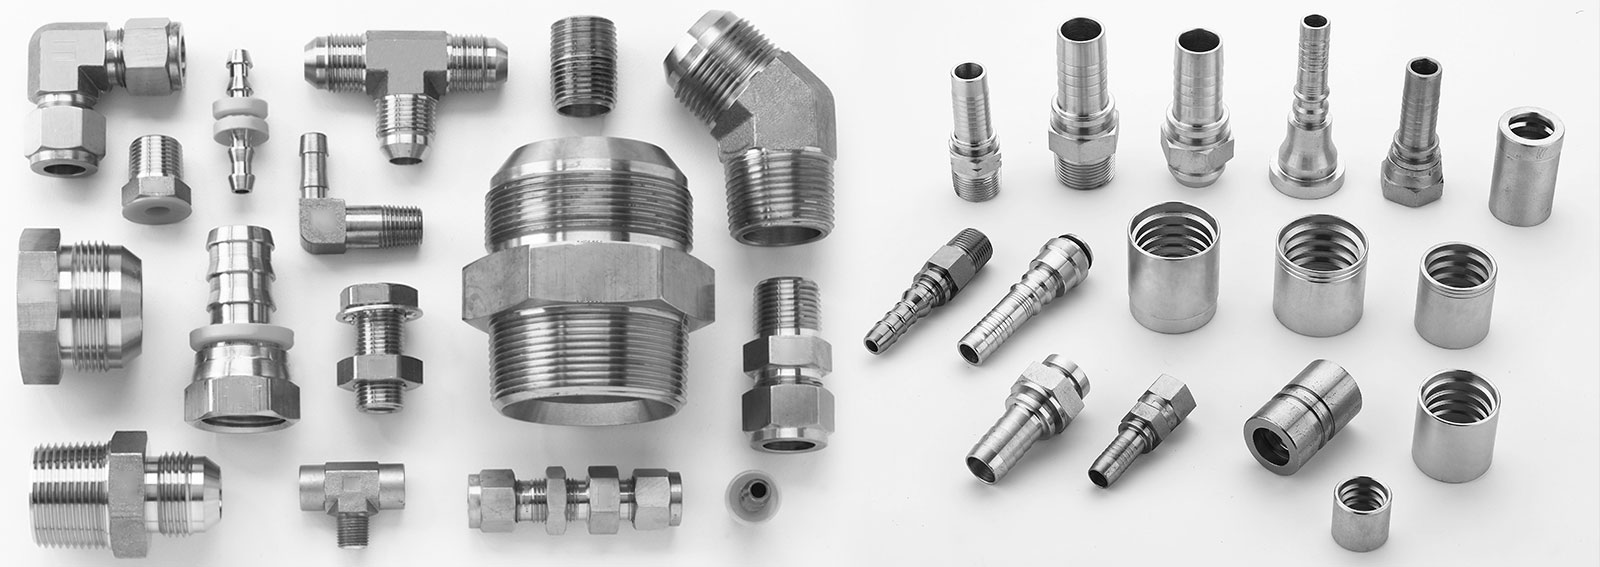 ferrule-instrumentation-tube-fittings